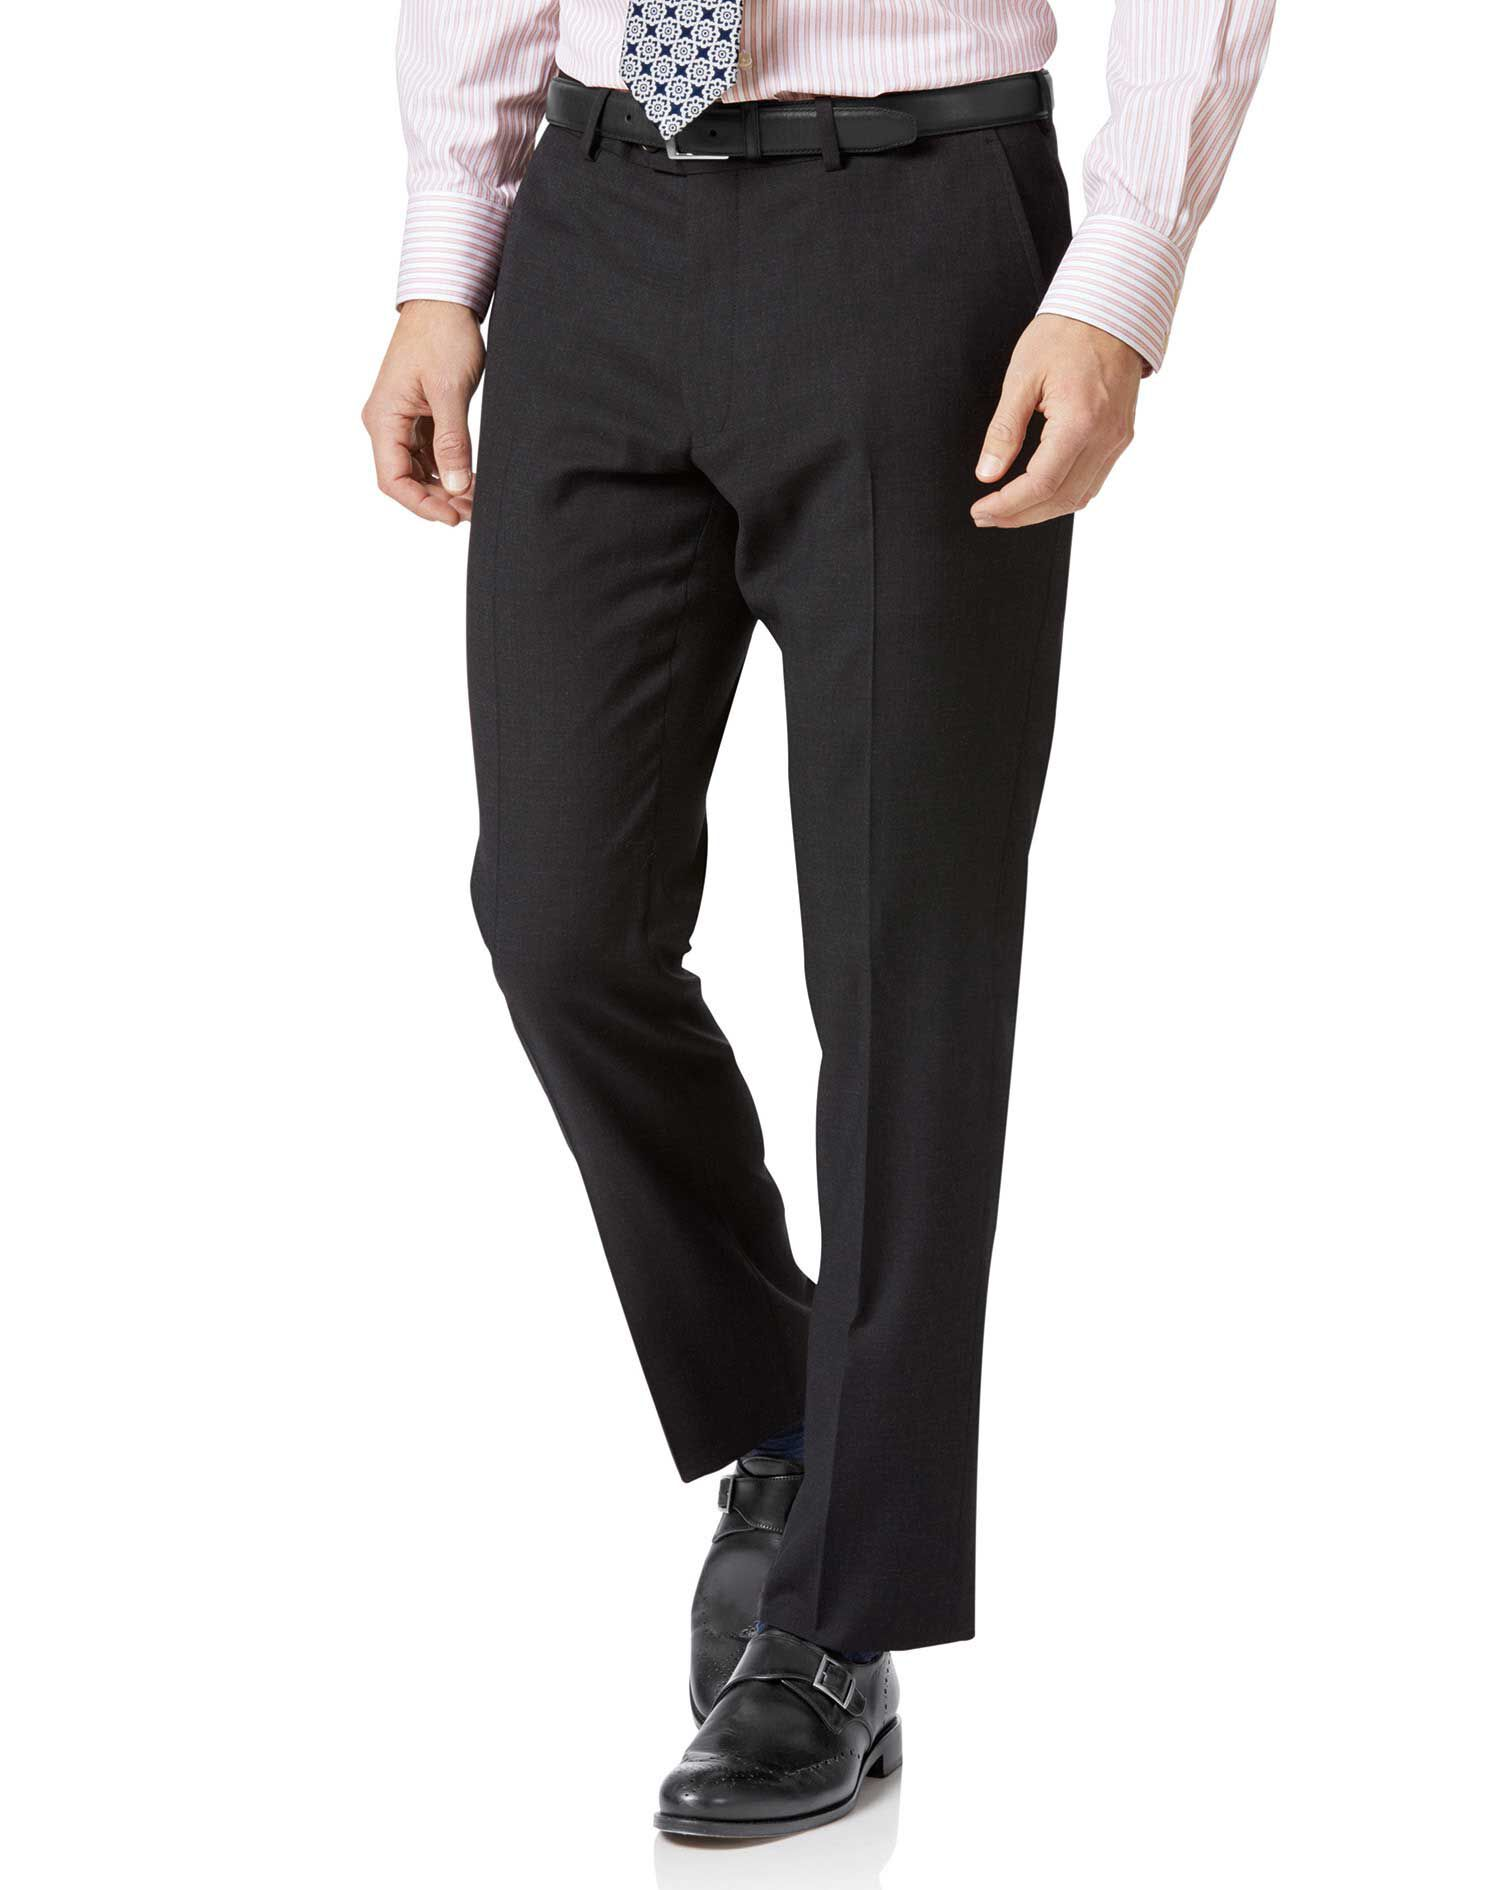 Charcoal Slim Fit Twill Business Suit Trousers Size W30 L32 by Charles Tyrwhitt